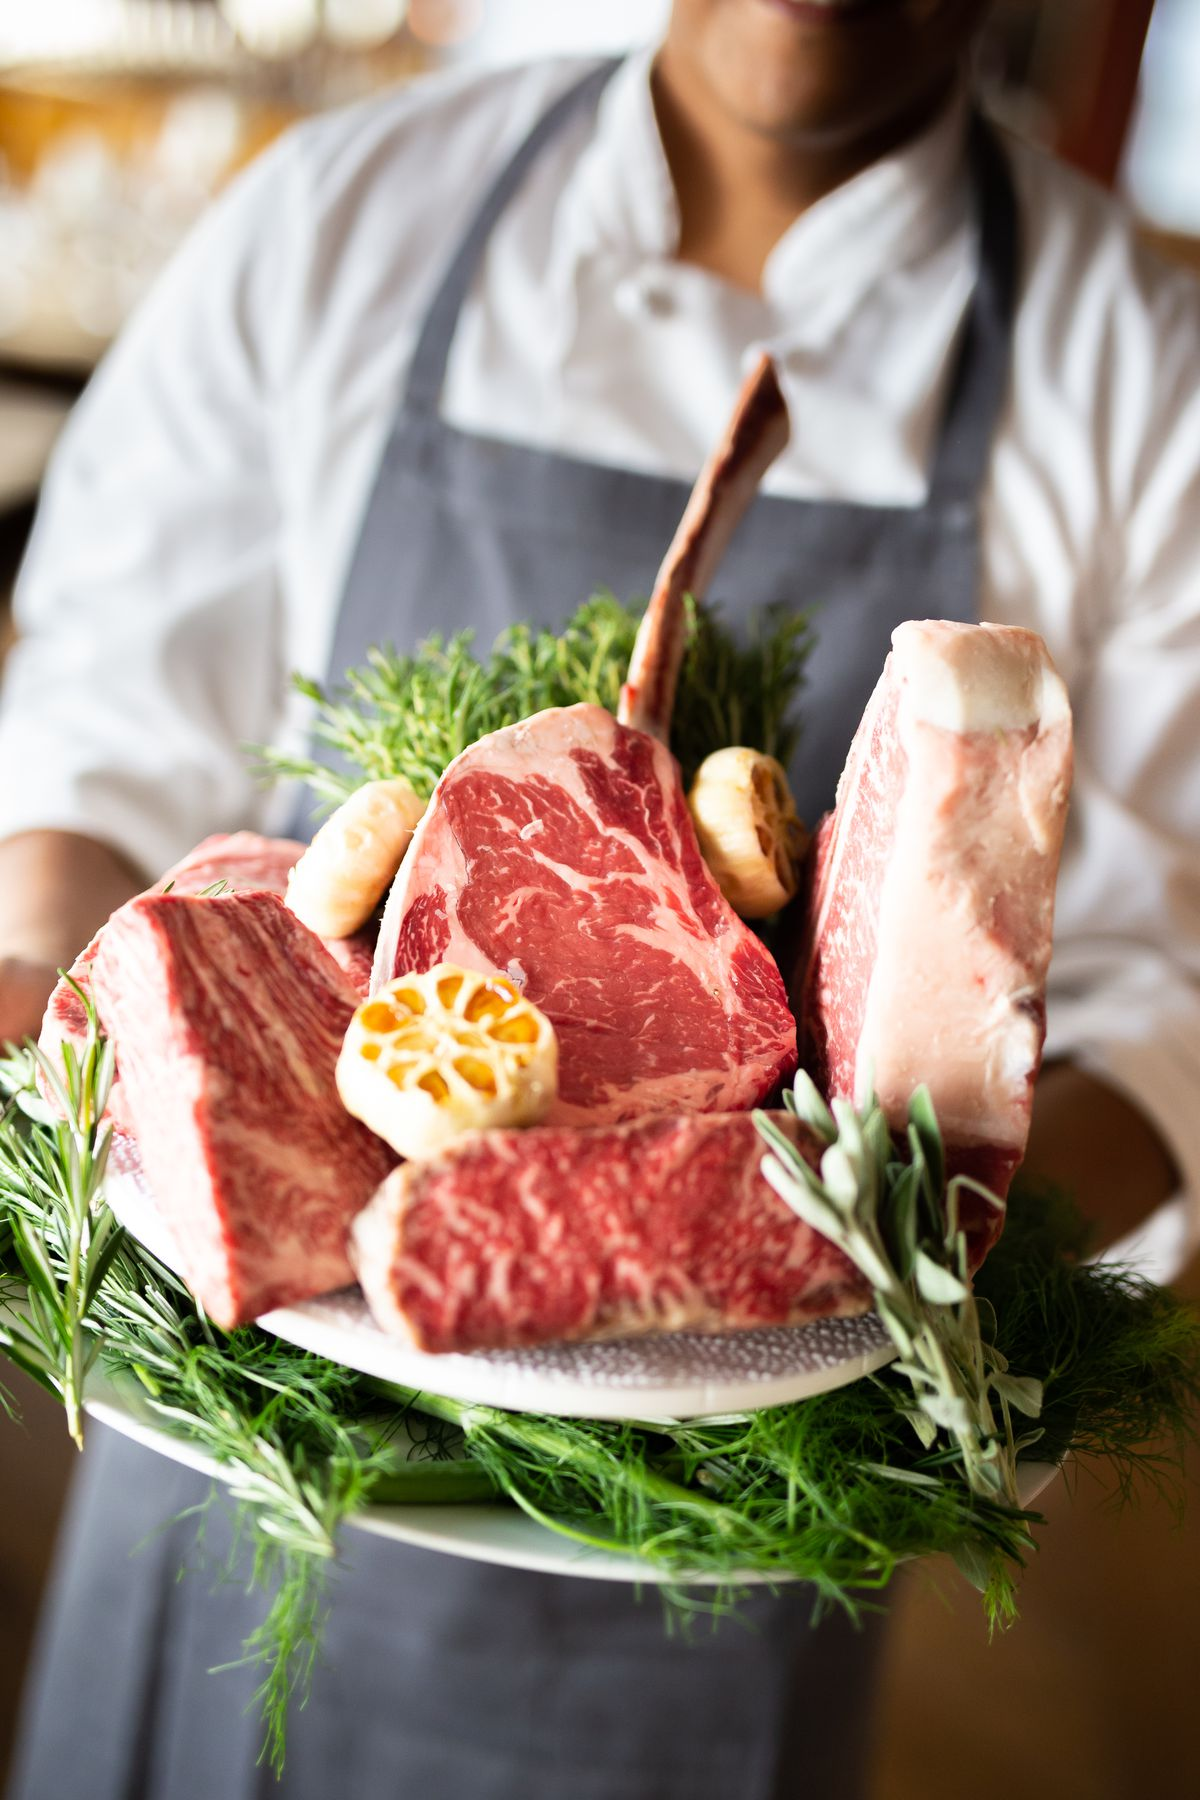 A staffer shows a variety of raw steaks on a plate decorated with rosemary